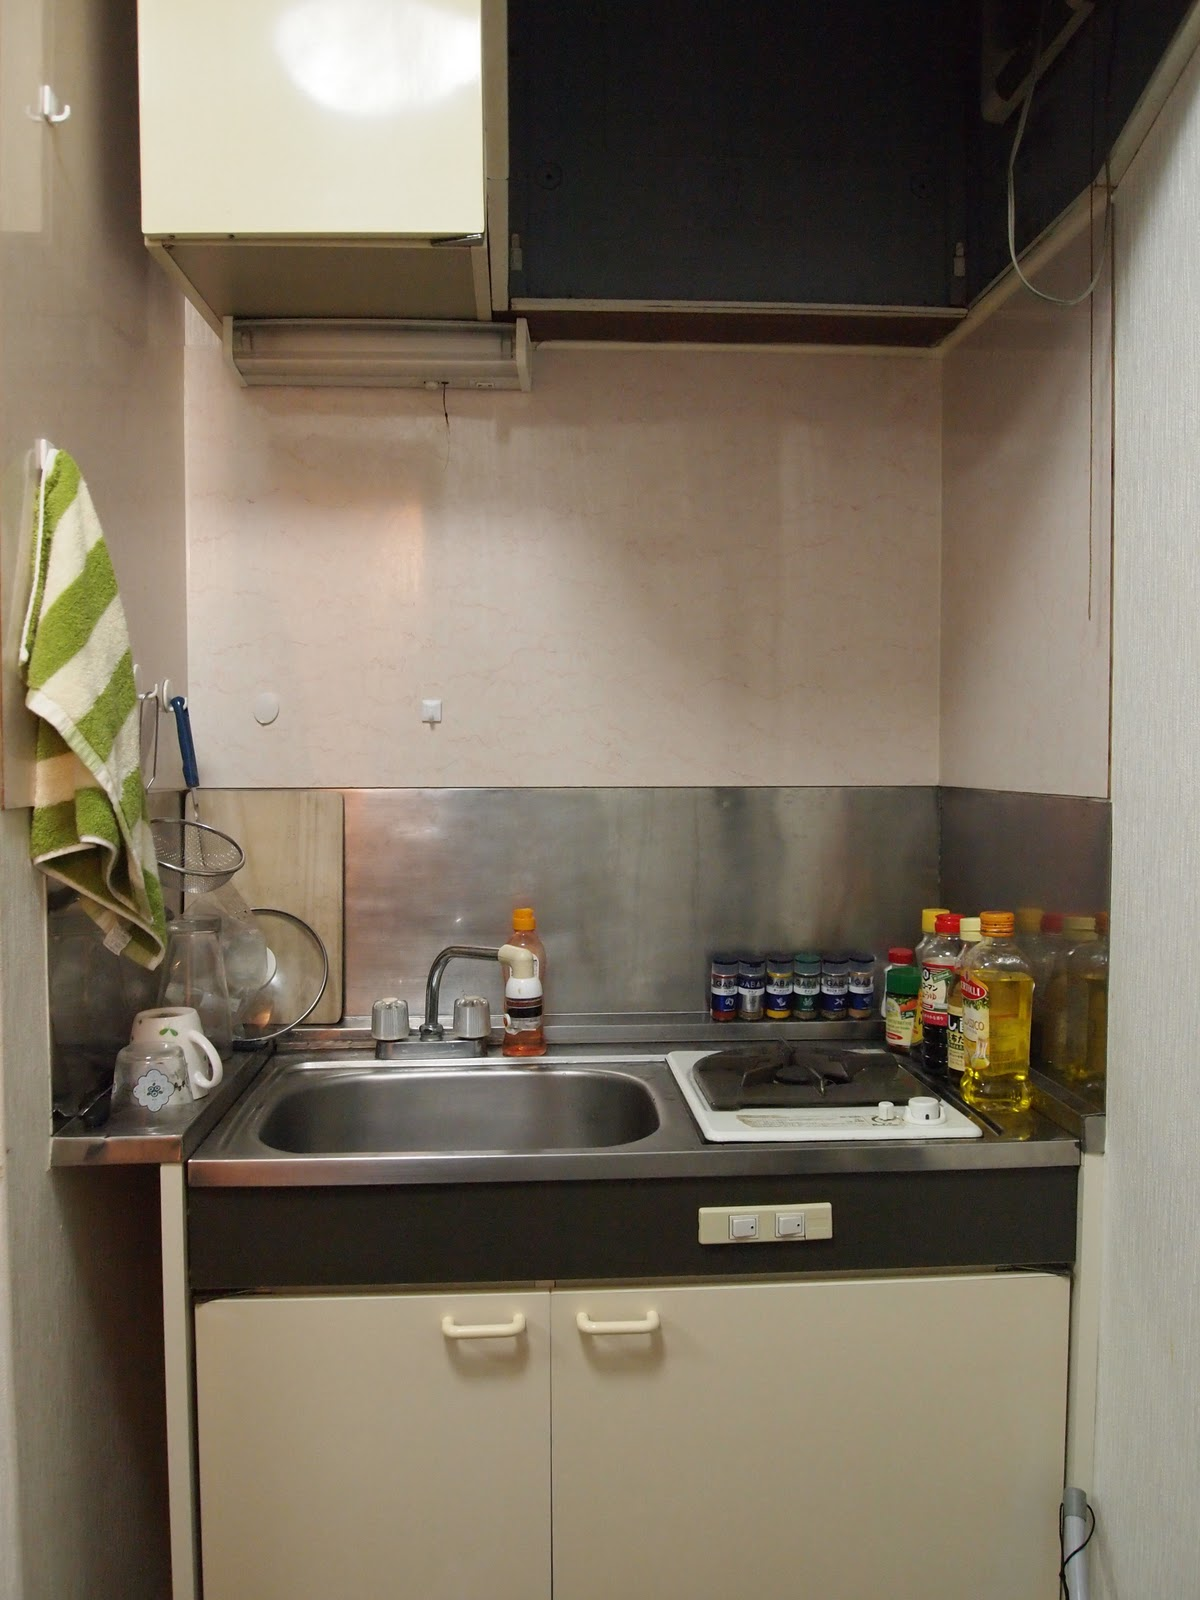 There Is One Gas Burner, No Oven, And No Counter. You See One Cabinet About  And One Below, And That Is All The Storage Space I ...